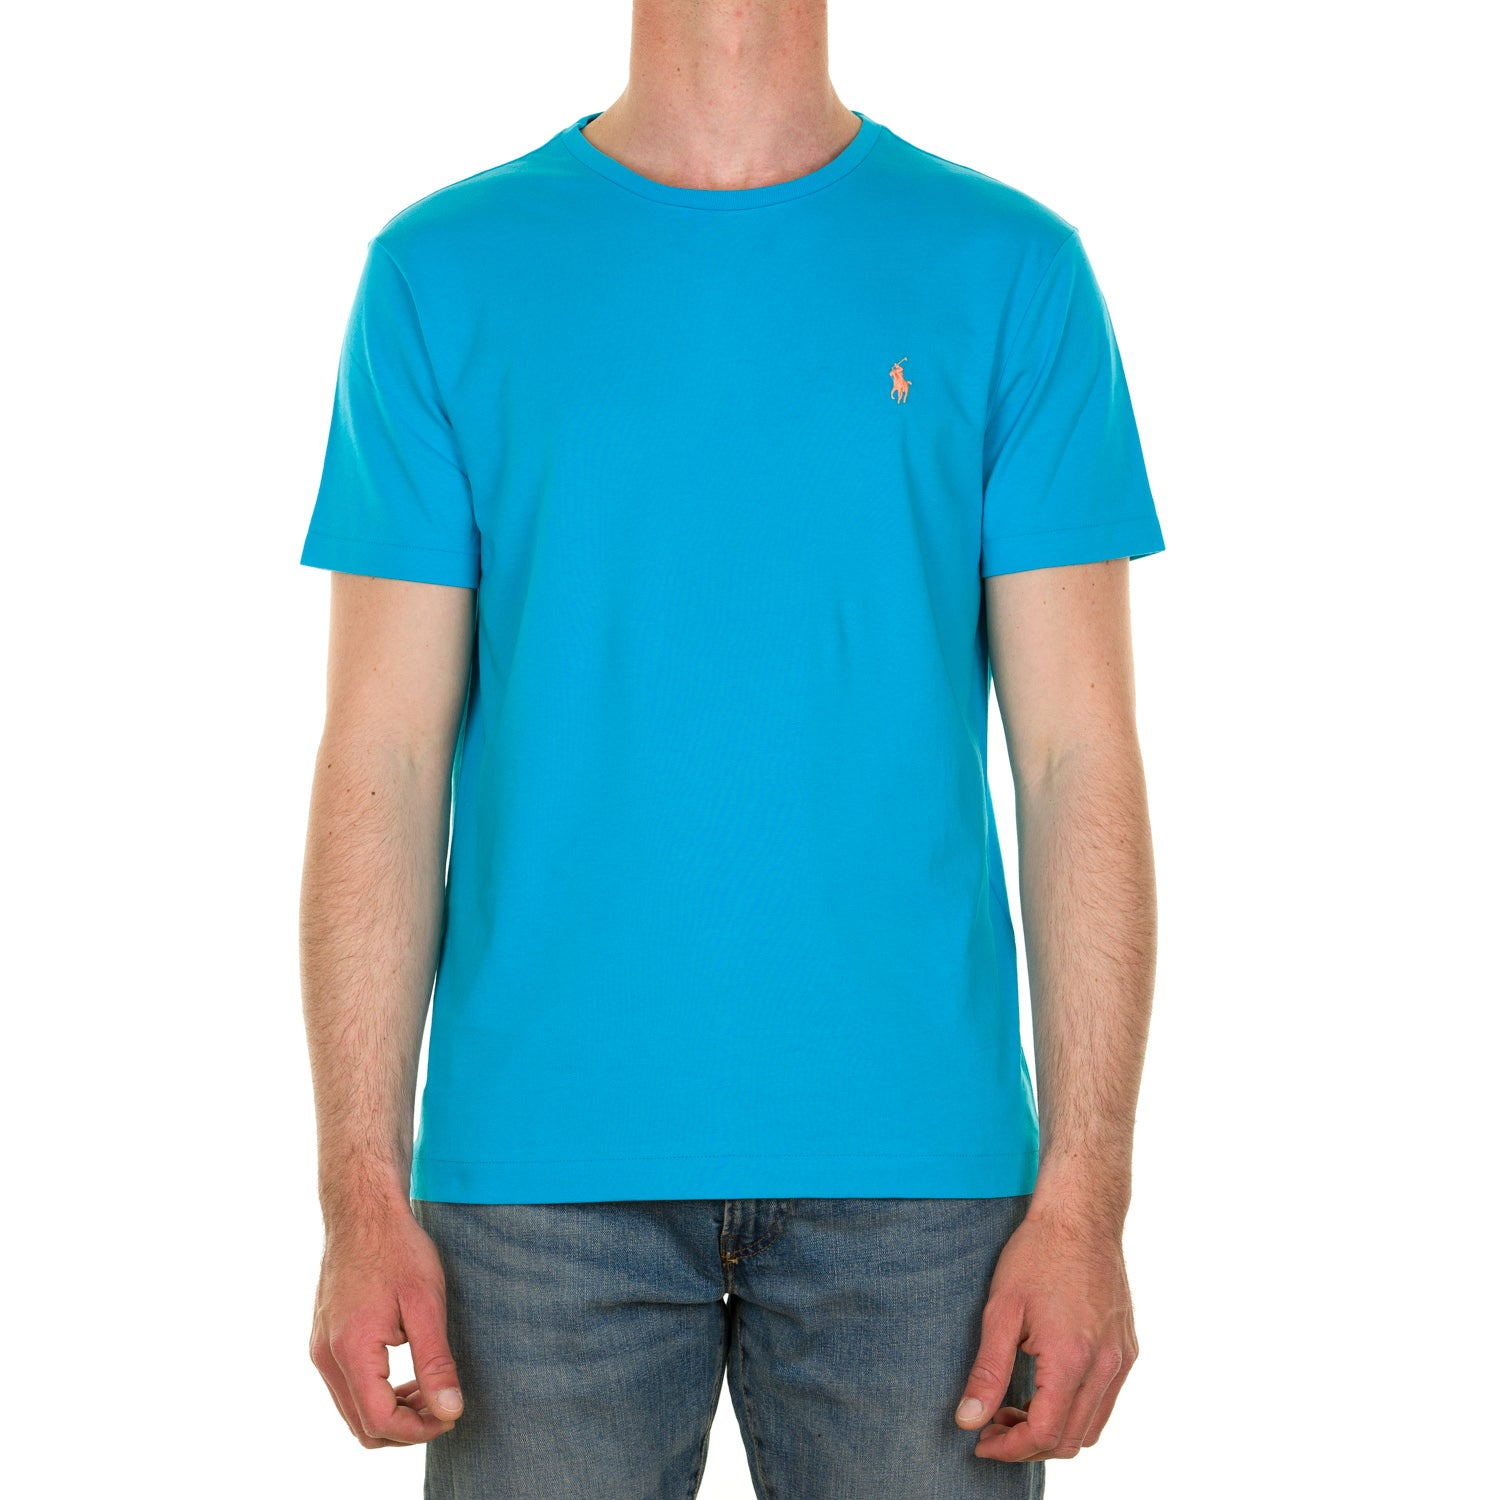 T-shirt POLO RALPH LAUREN 217 710671438 Cove blue